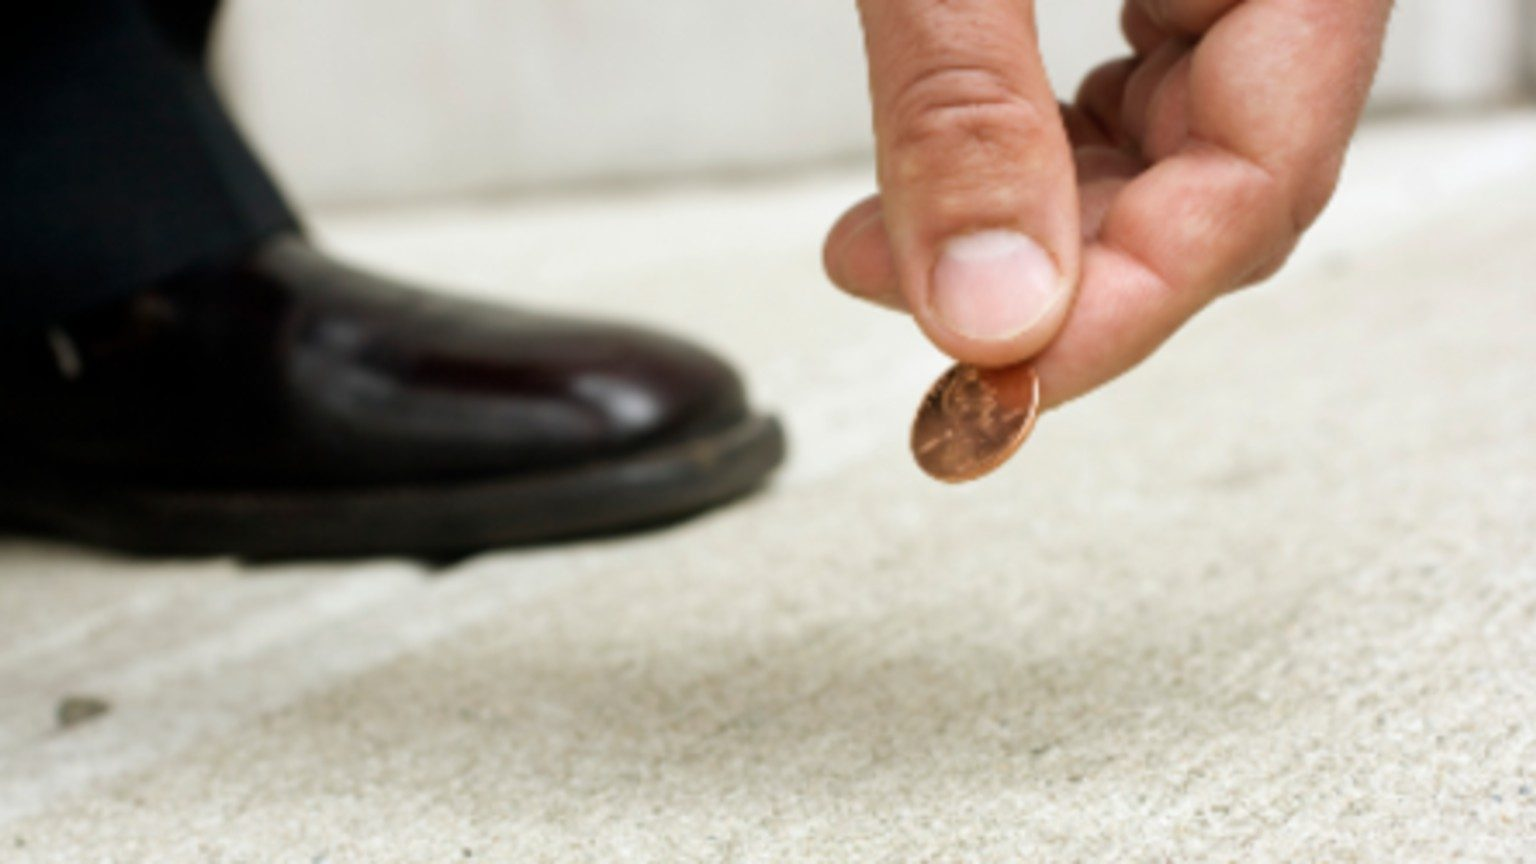 Picking a coin from the floor